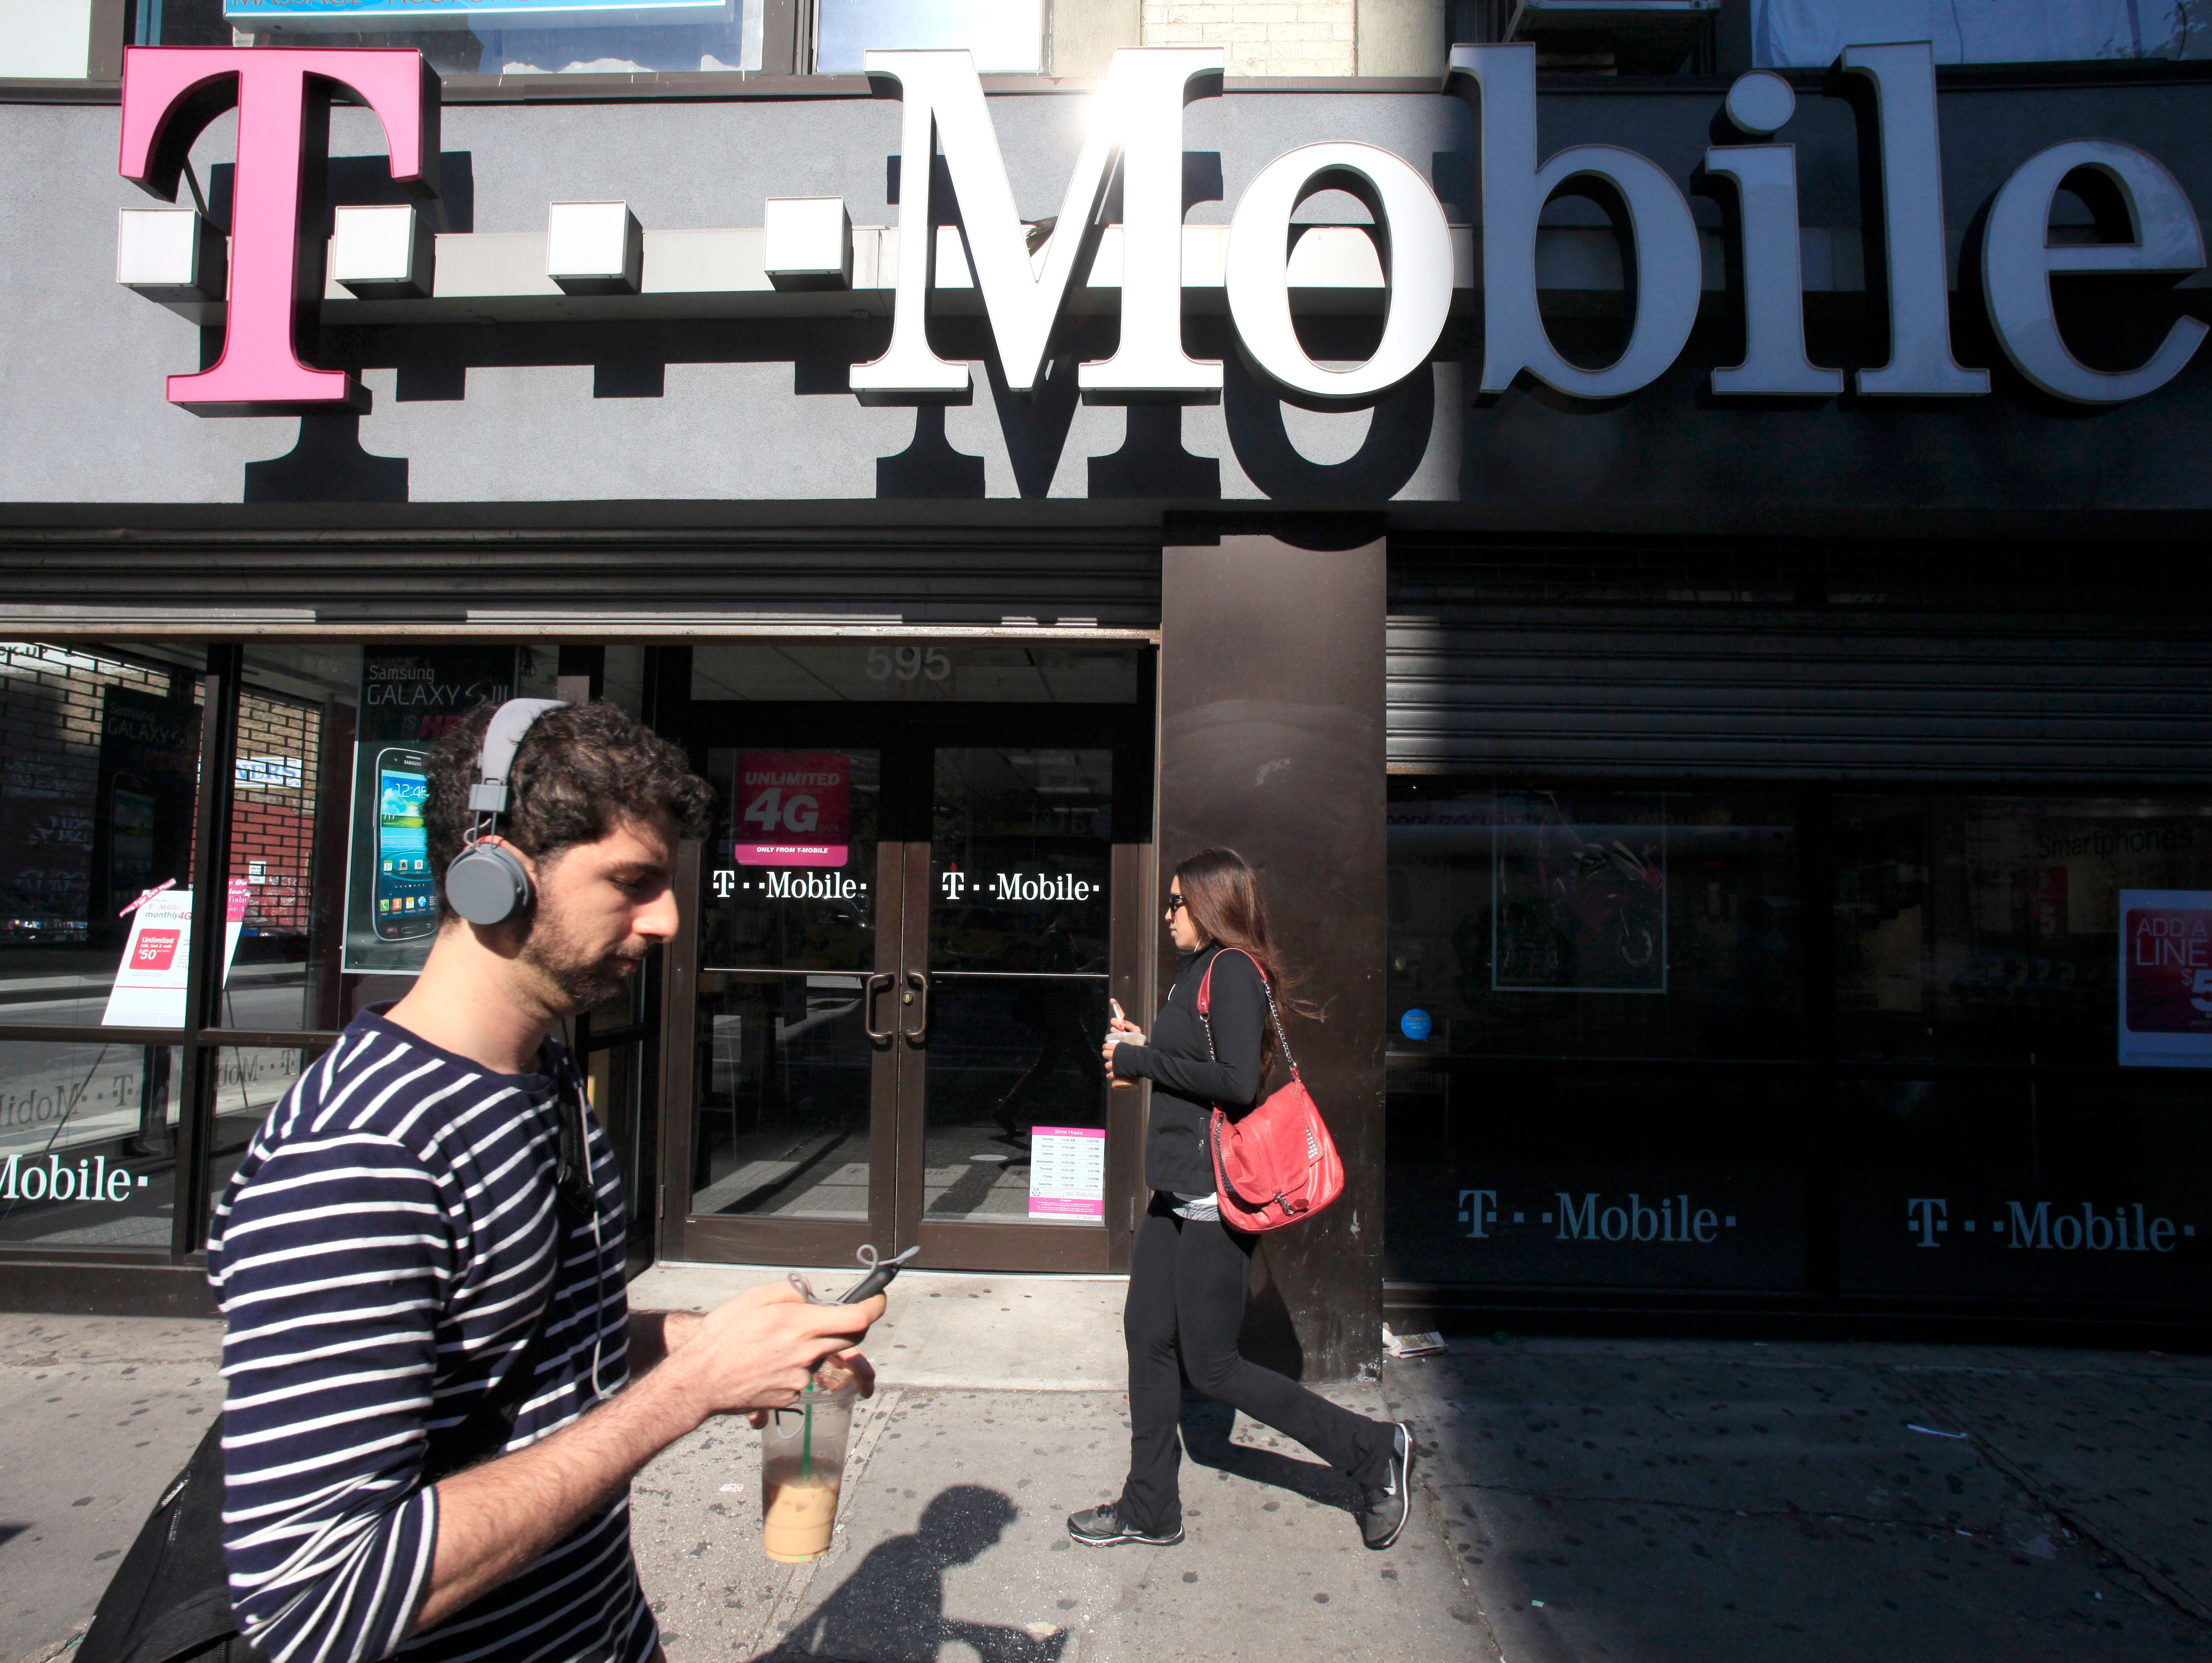 In this Sept. 12, 2012 file photo, a man uses a cellphone as he passes a T-Mobile store in New York. Credit reporting agency Experian on Thursday, Oct. 1, 2015 said that hackers accessed the social security numbers, birthdates and other personal info